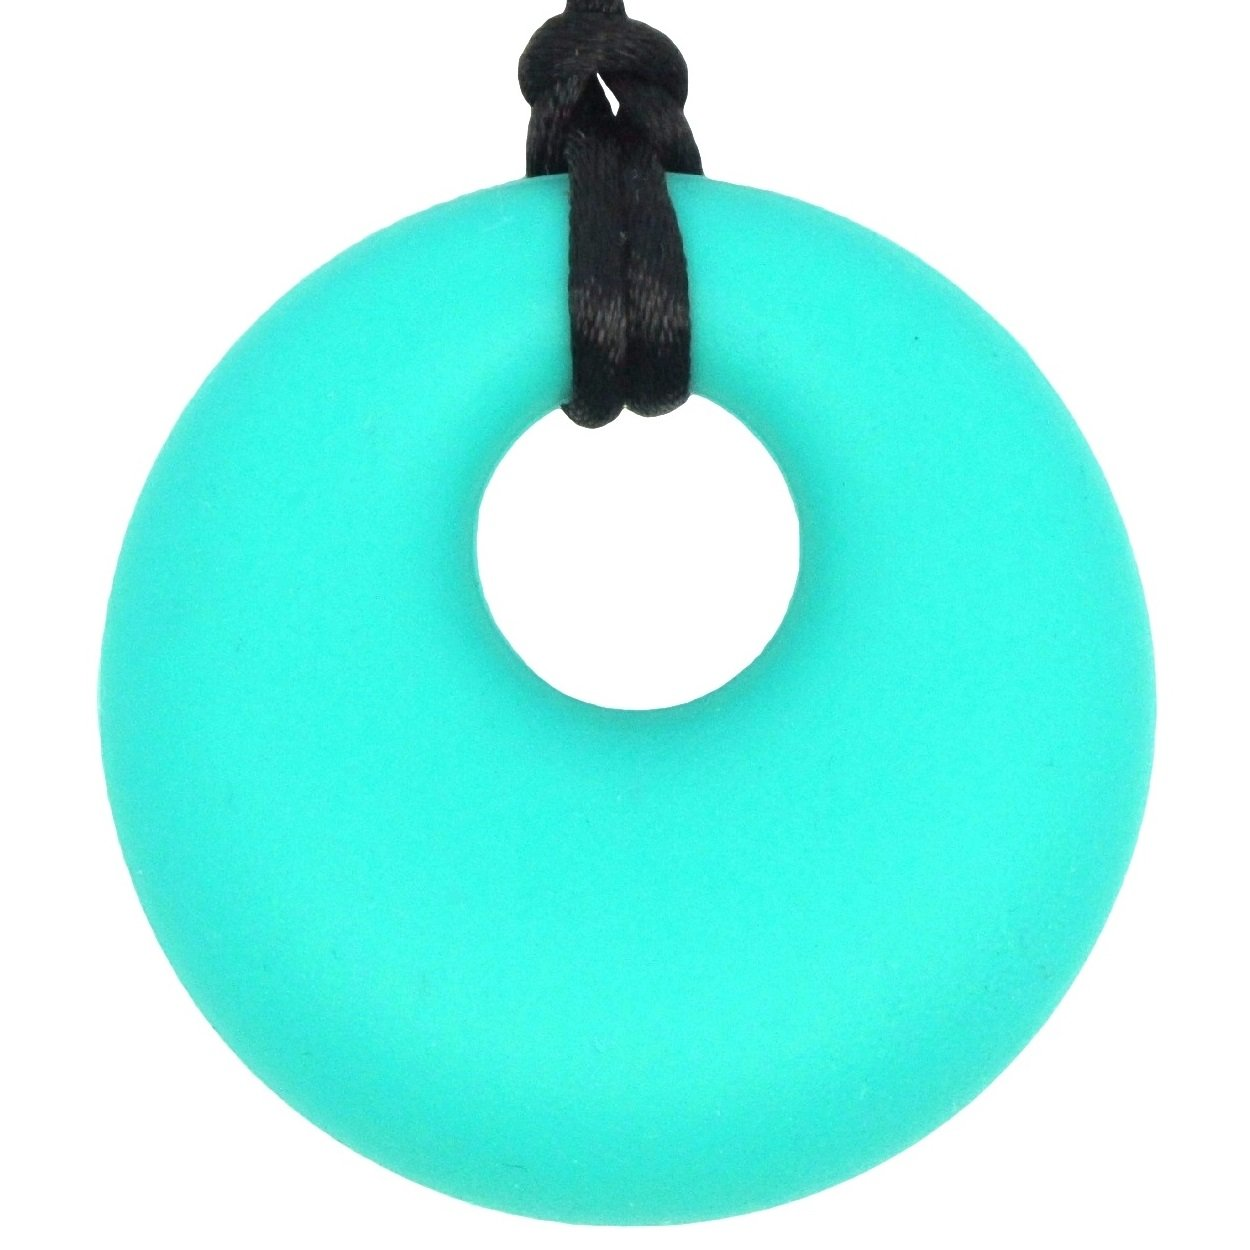 Baby Teething Necklace for Mom to Wear - BPA-Free & FDA Approved Teether - Safe & Soothing Relief For Baby (Turquoise/Teal) by Beabies   B00T2E1YMS